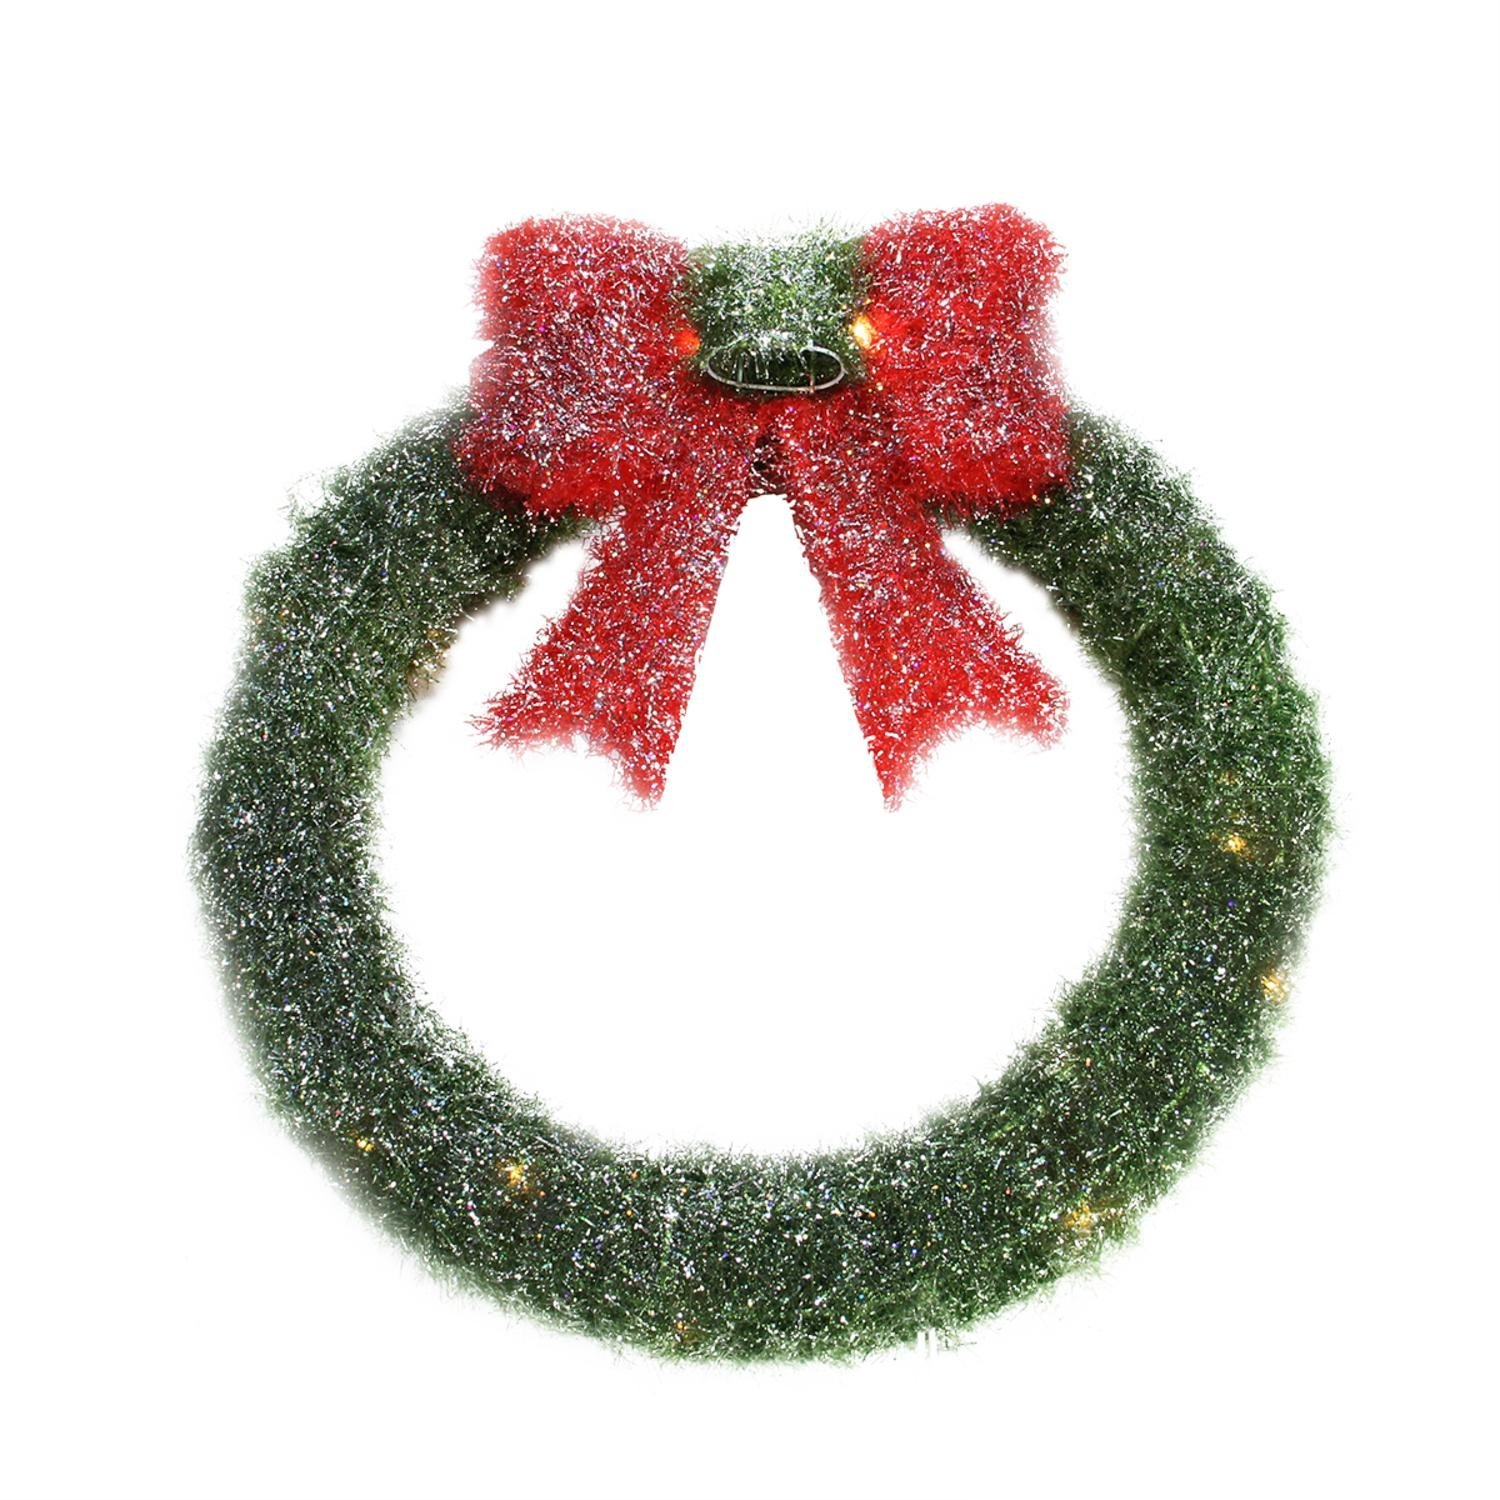 By Alger 16'' Lighted Tinsel Green Wreath with Bow Christmas Window Decoration